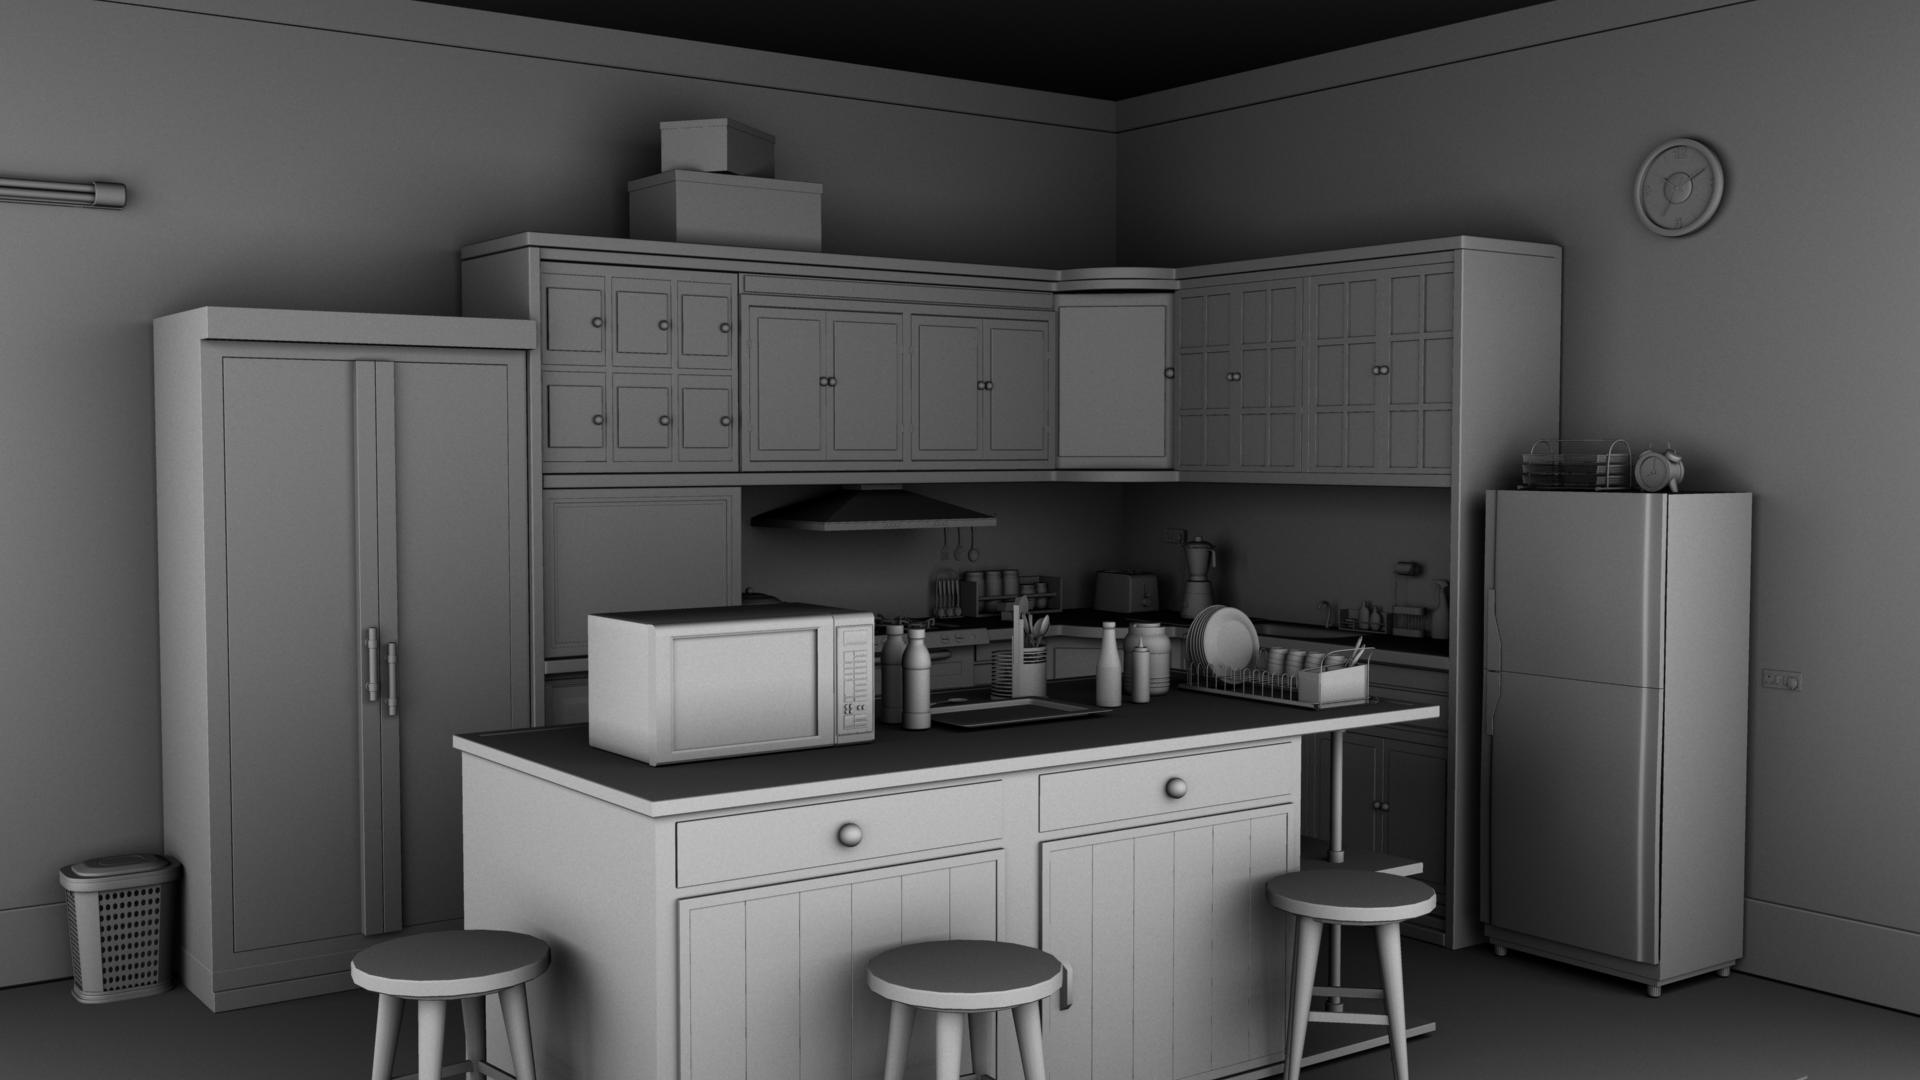 Kitchen 3D Model Custom Kitchen 3D Model Architecture 3D Models Kitchen Ar Vr Design Inspiration